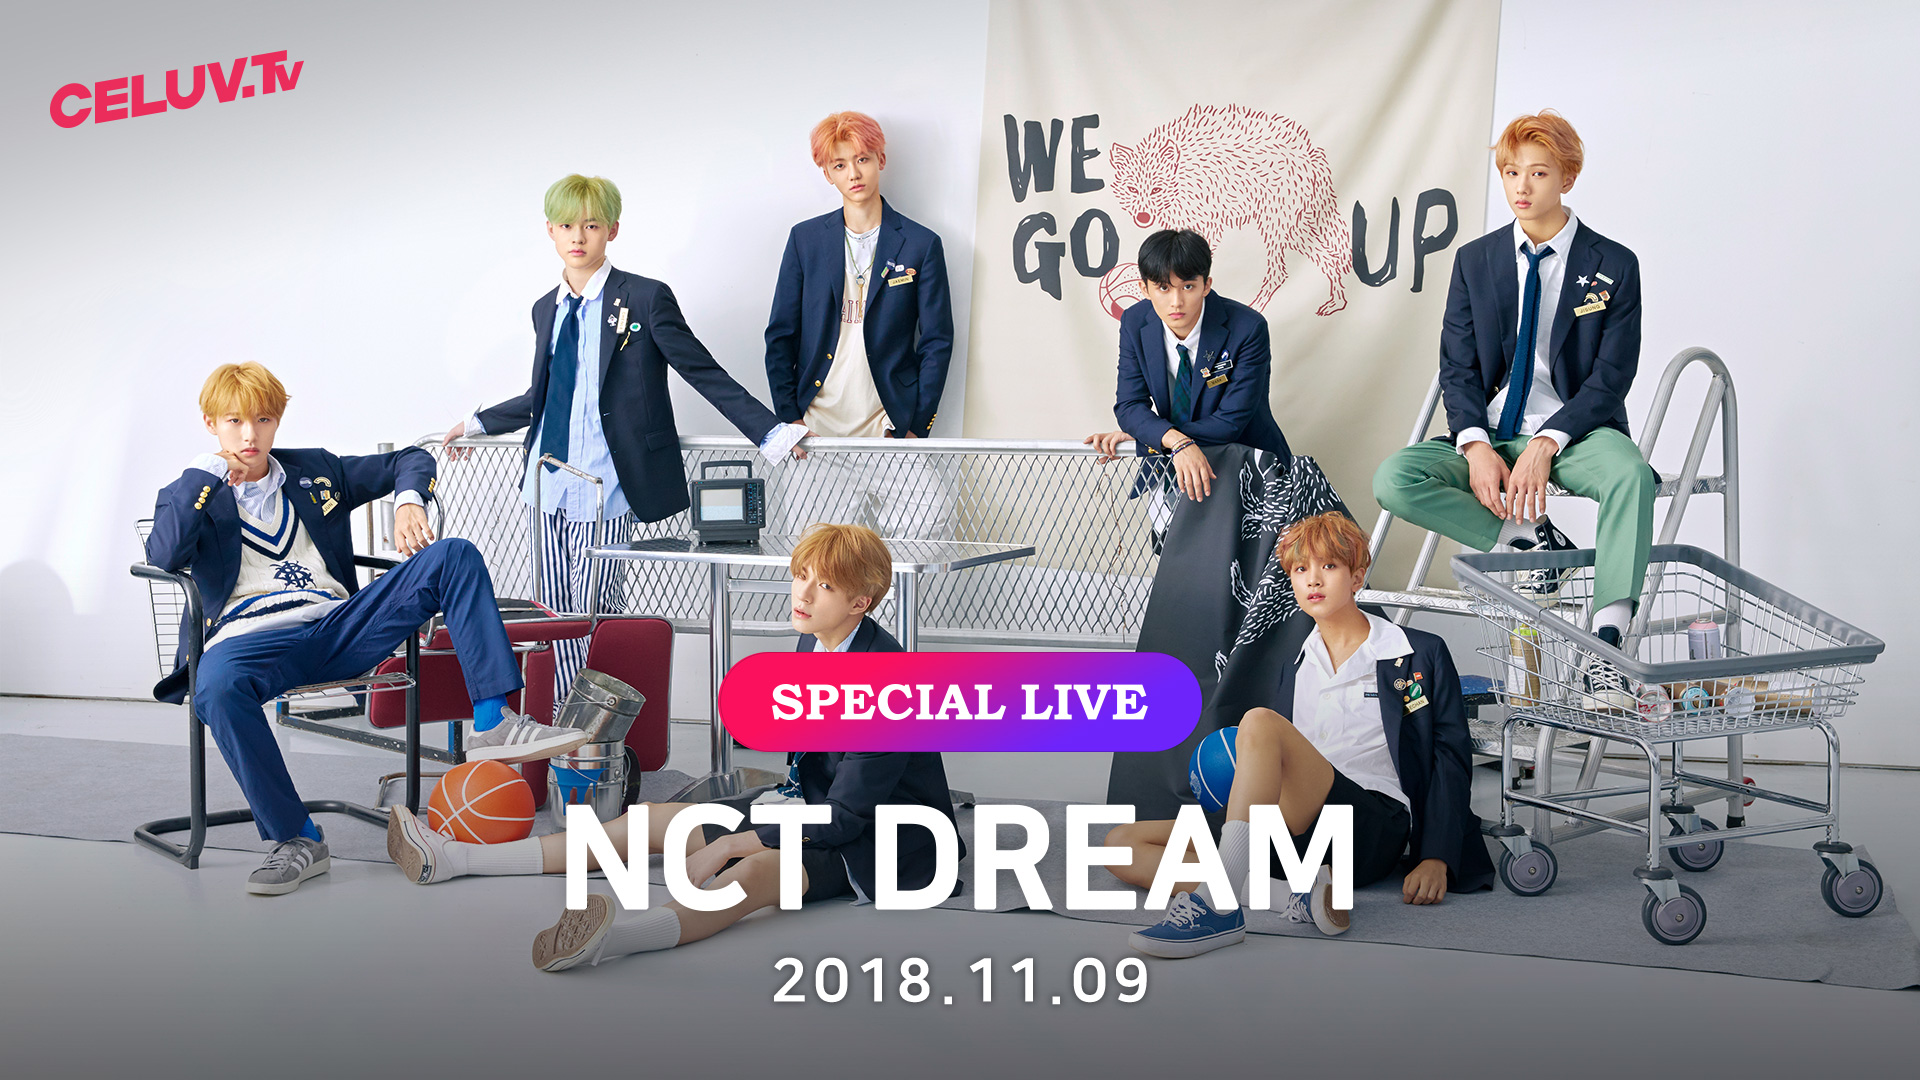 [Replay][I'm Celuv] NCT DREAM, 다 함께 Go Up 할 시간!